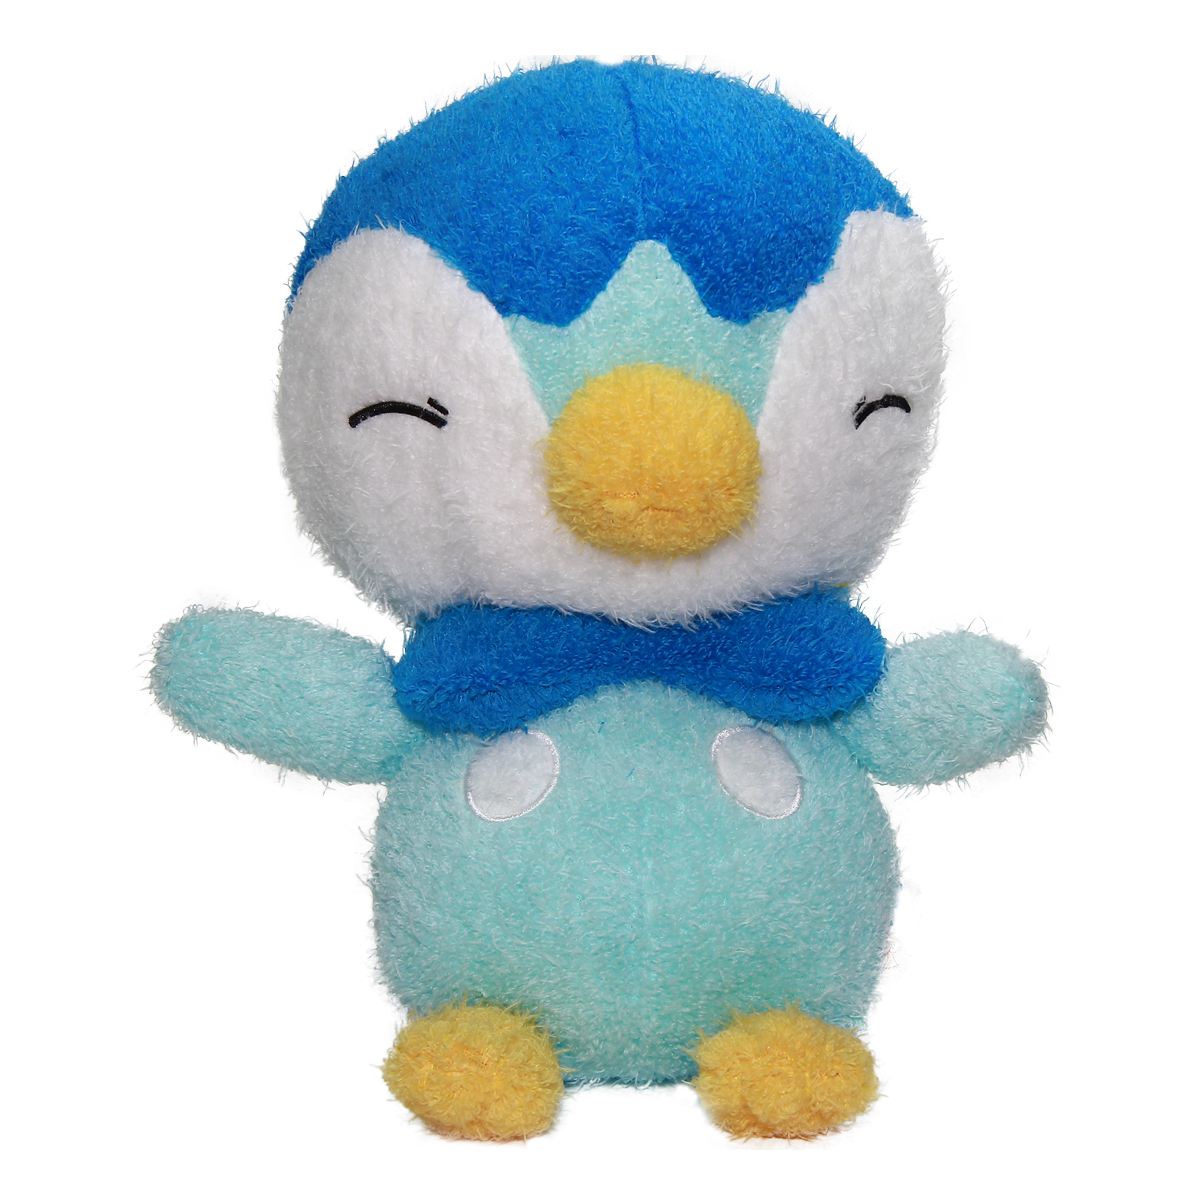 Pokemon Spirits Fuzzy Piplup Plush Doll 12 Inches Banpresto